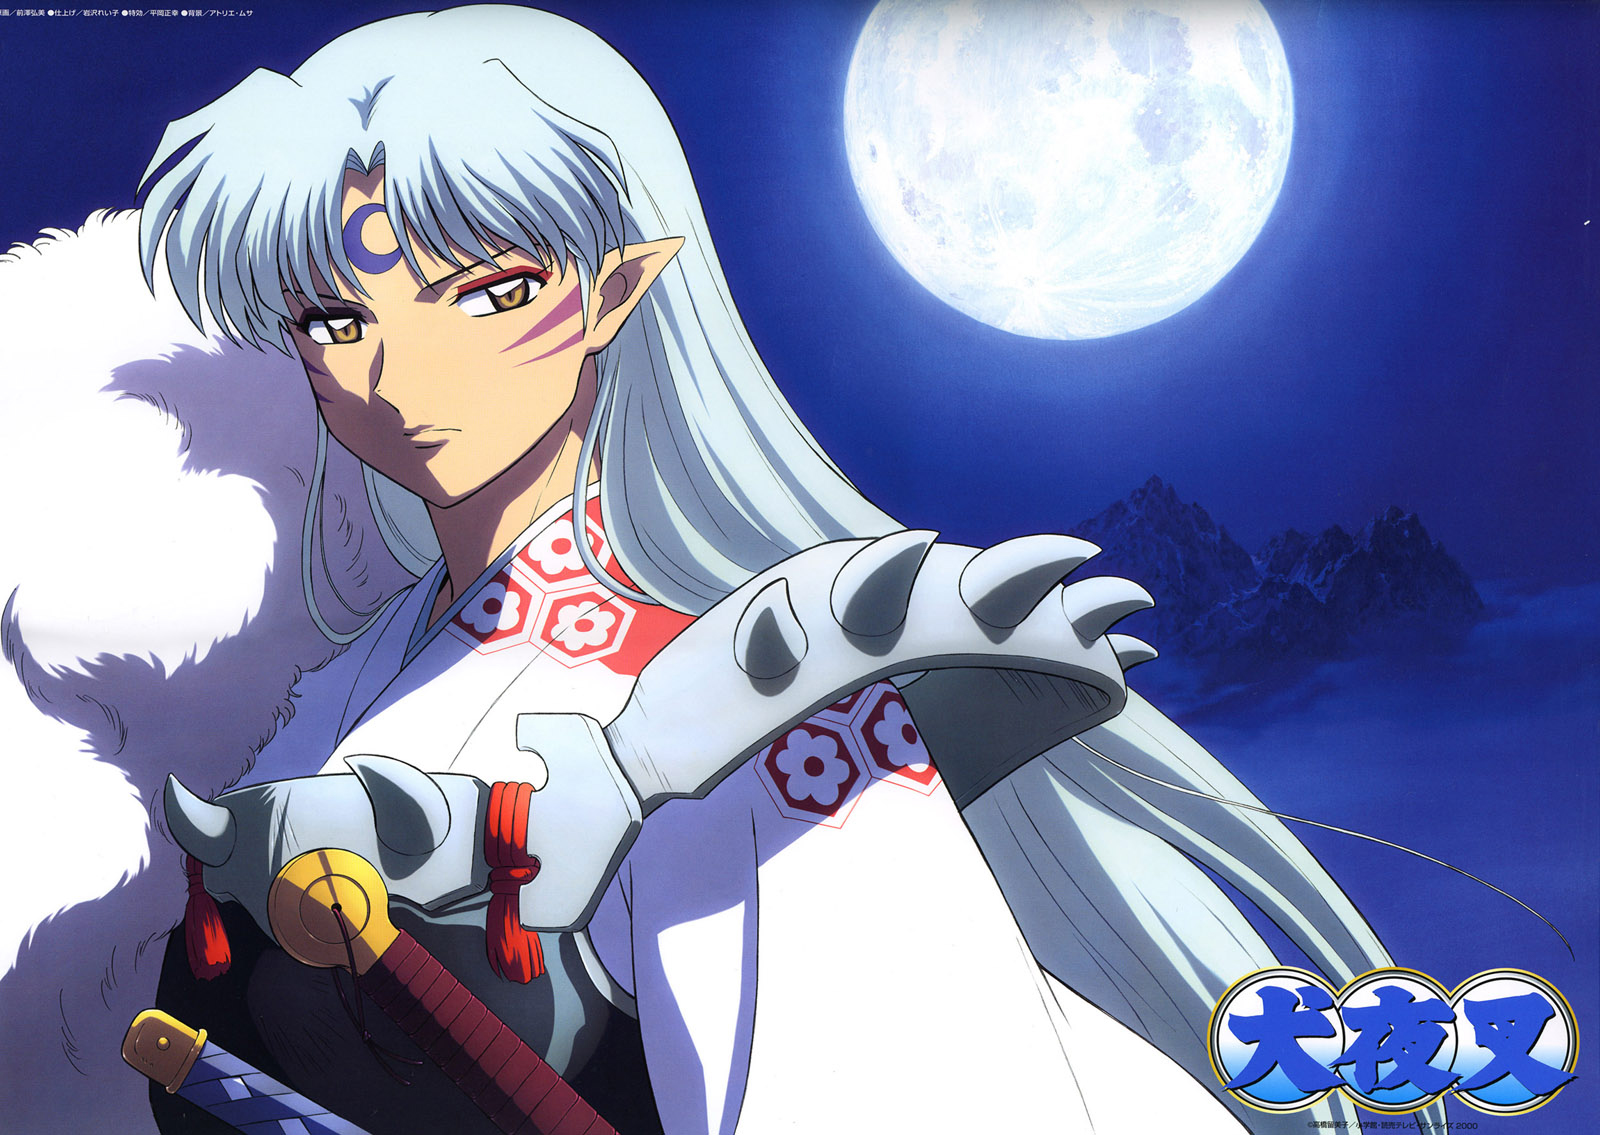 Sesshomaru and Kagome Lemon Fic http://genuardis.net/kagome/kagome-lemon.htm